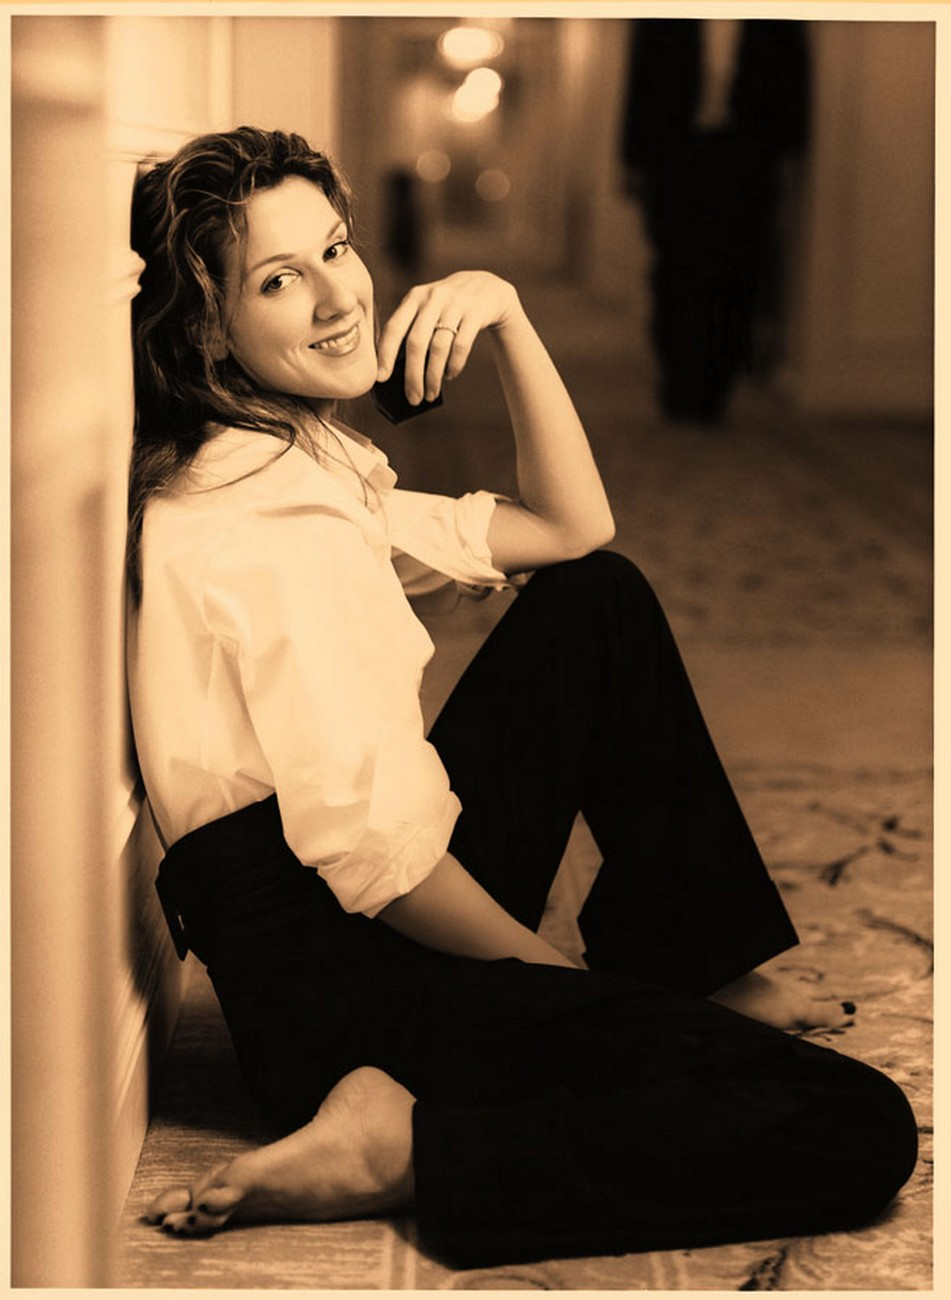 Celine Dion - 'These are Special Times' Photoshoot